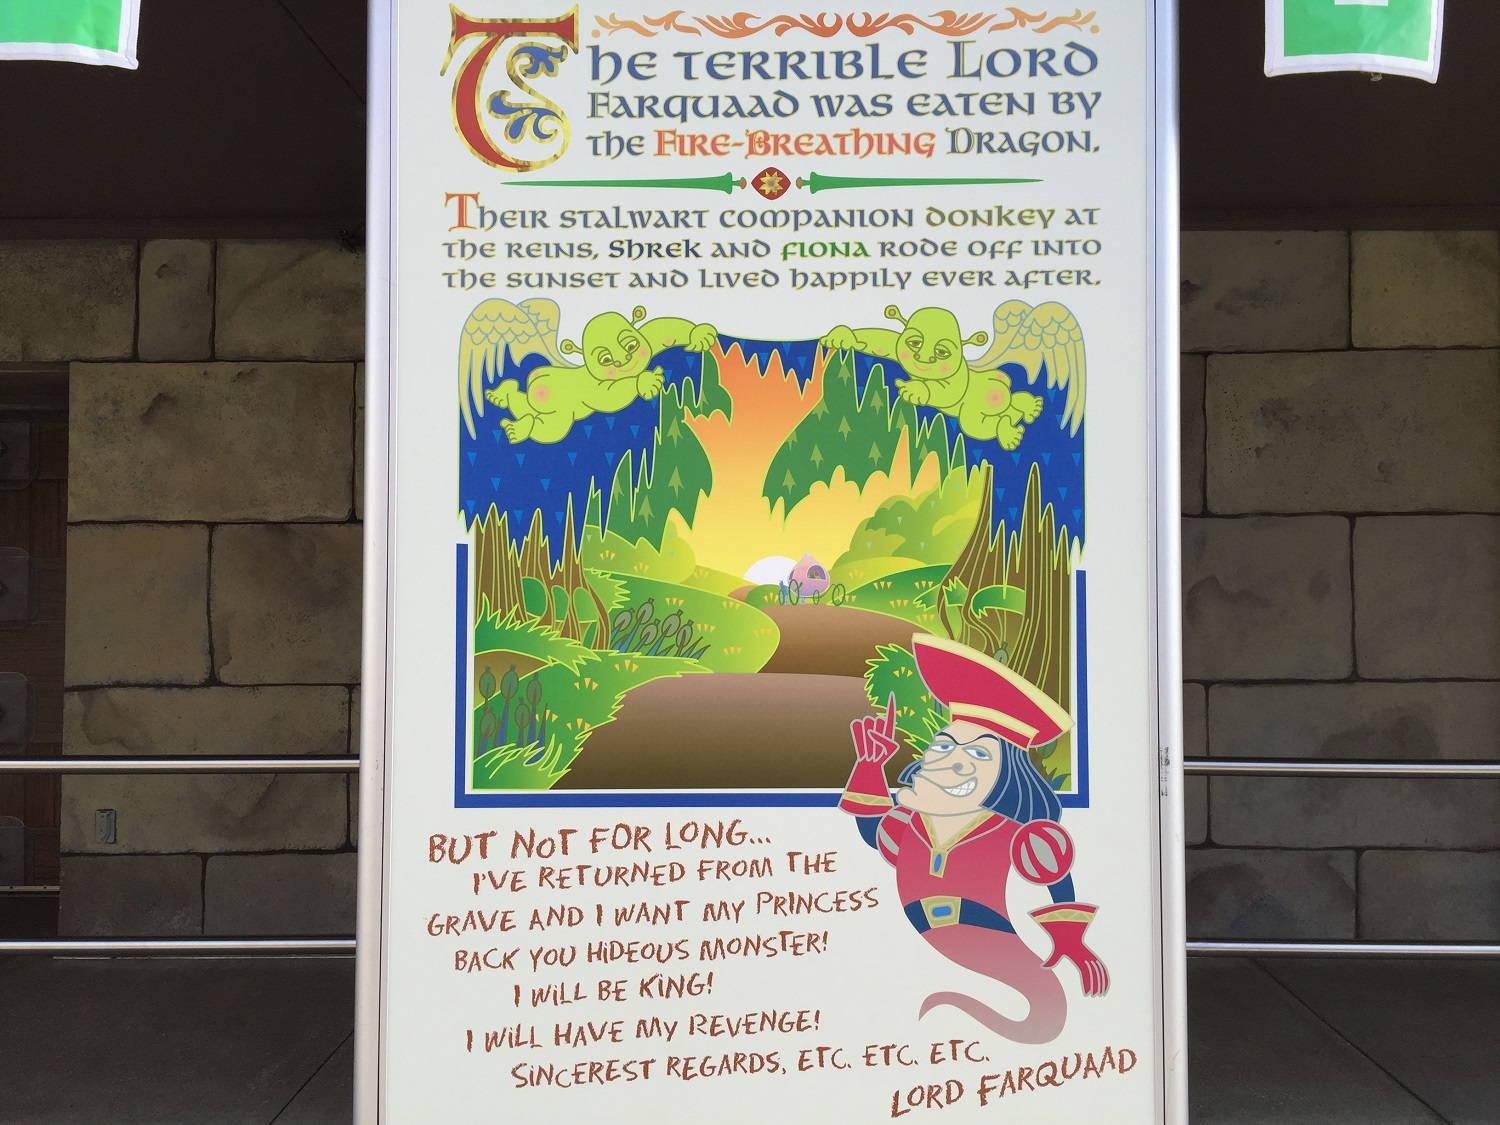 A synopsis of the Shrek 4-D storyline can be found in the outdoor queue.